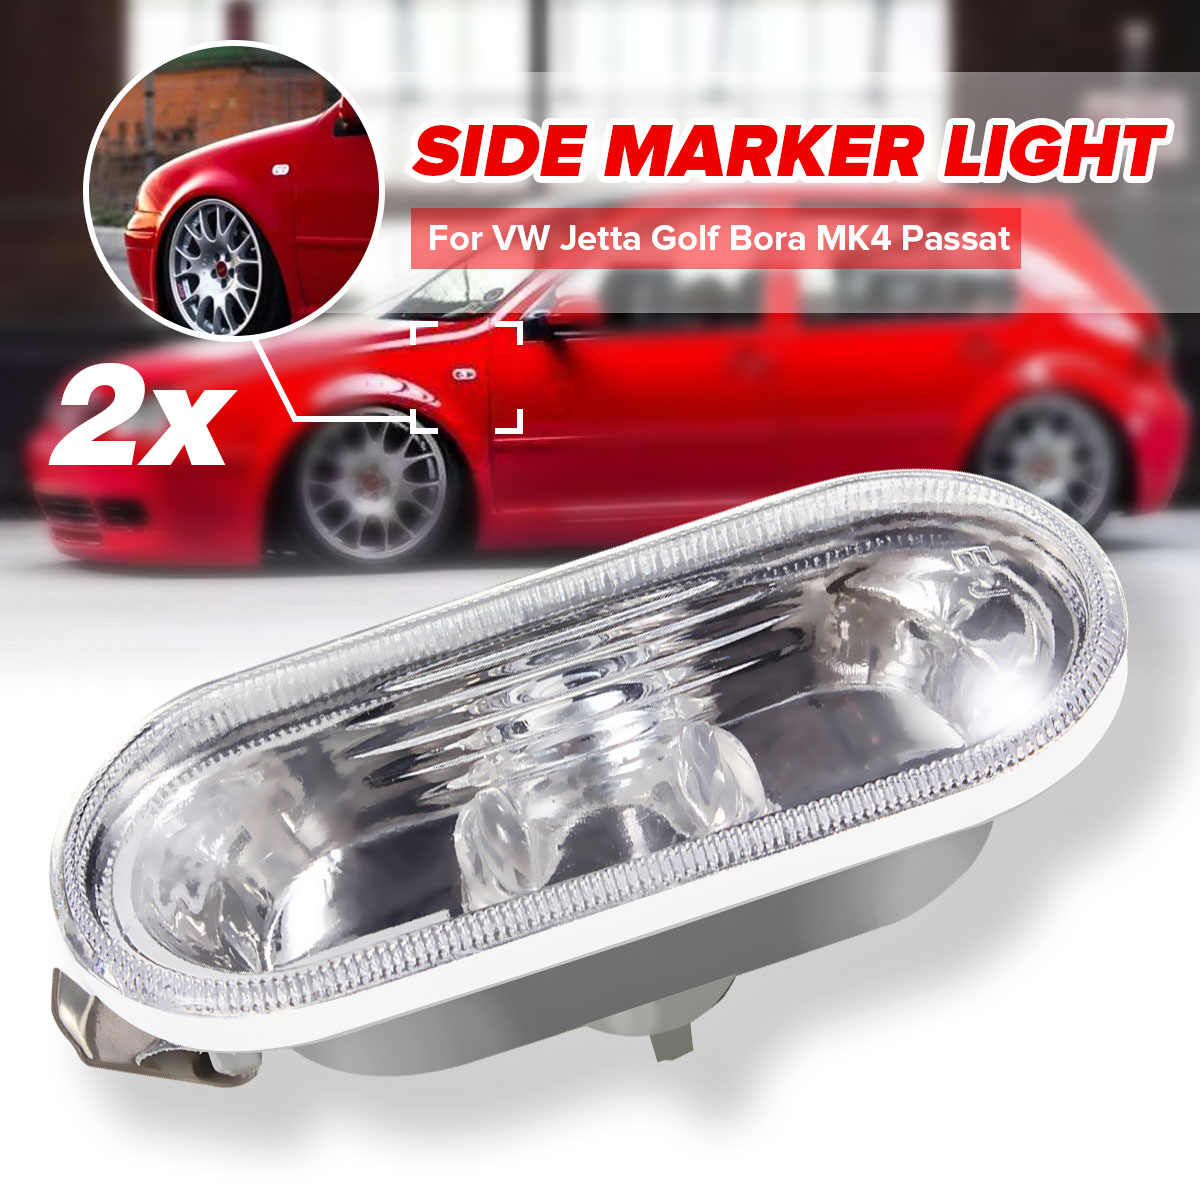 2Pcs Car Auto Side Marker Light For VW Jetta Golf Bora MK4 Passat B5 B5.5 GTI Beetle R32